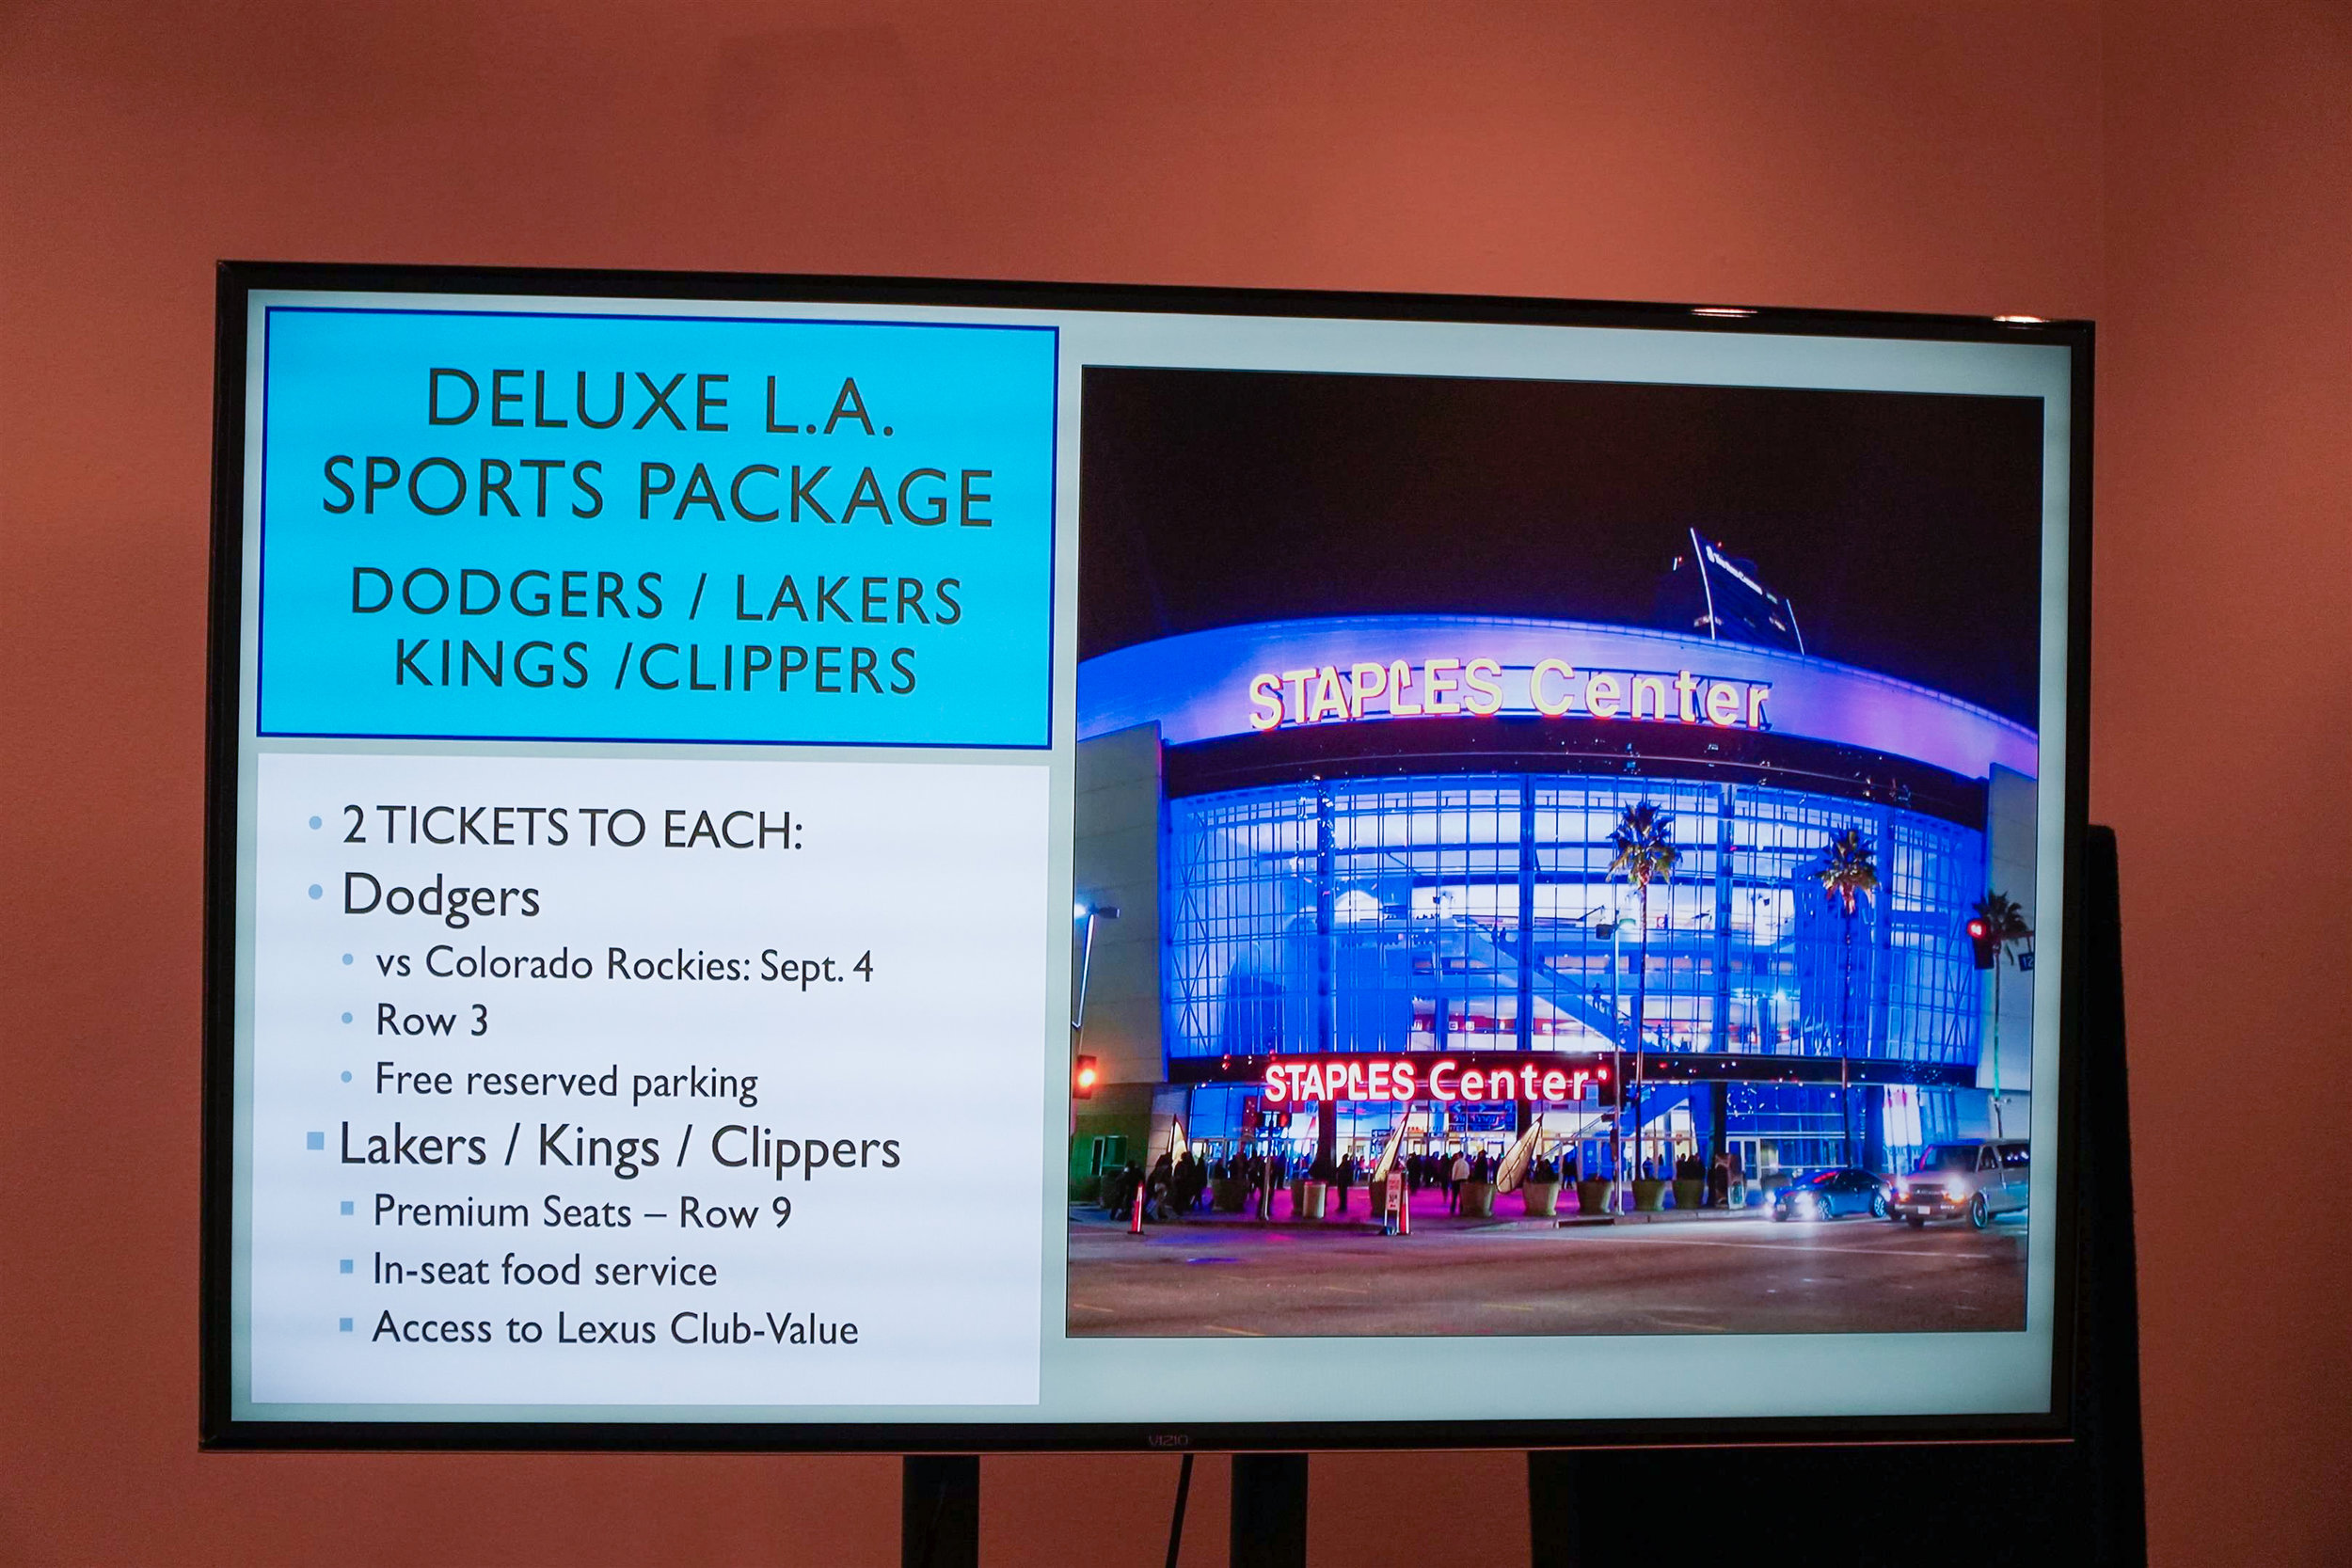 Deluxe L.A. Sports Package